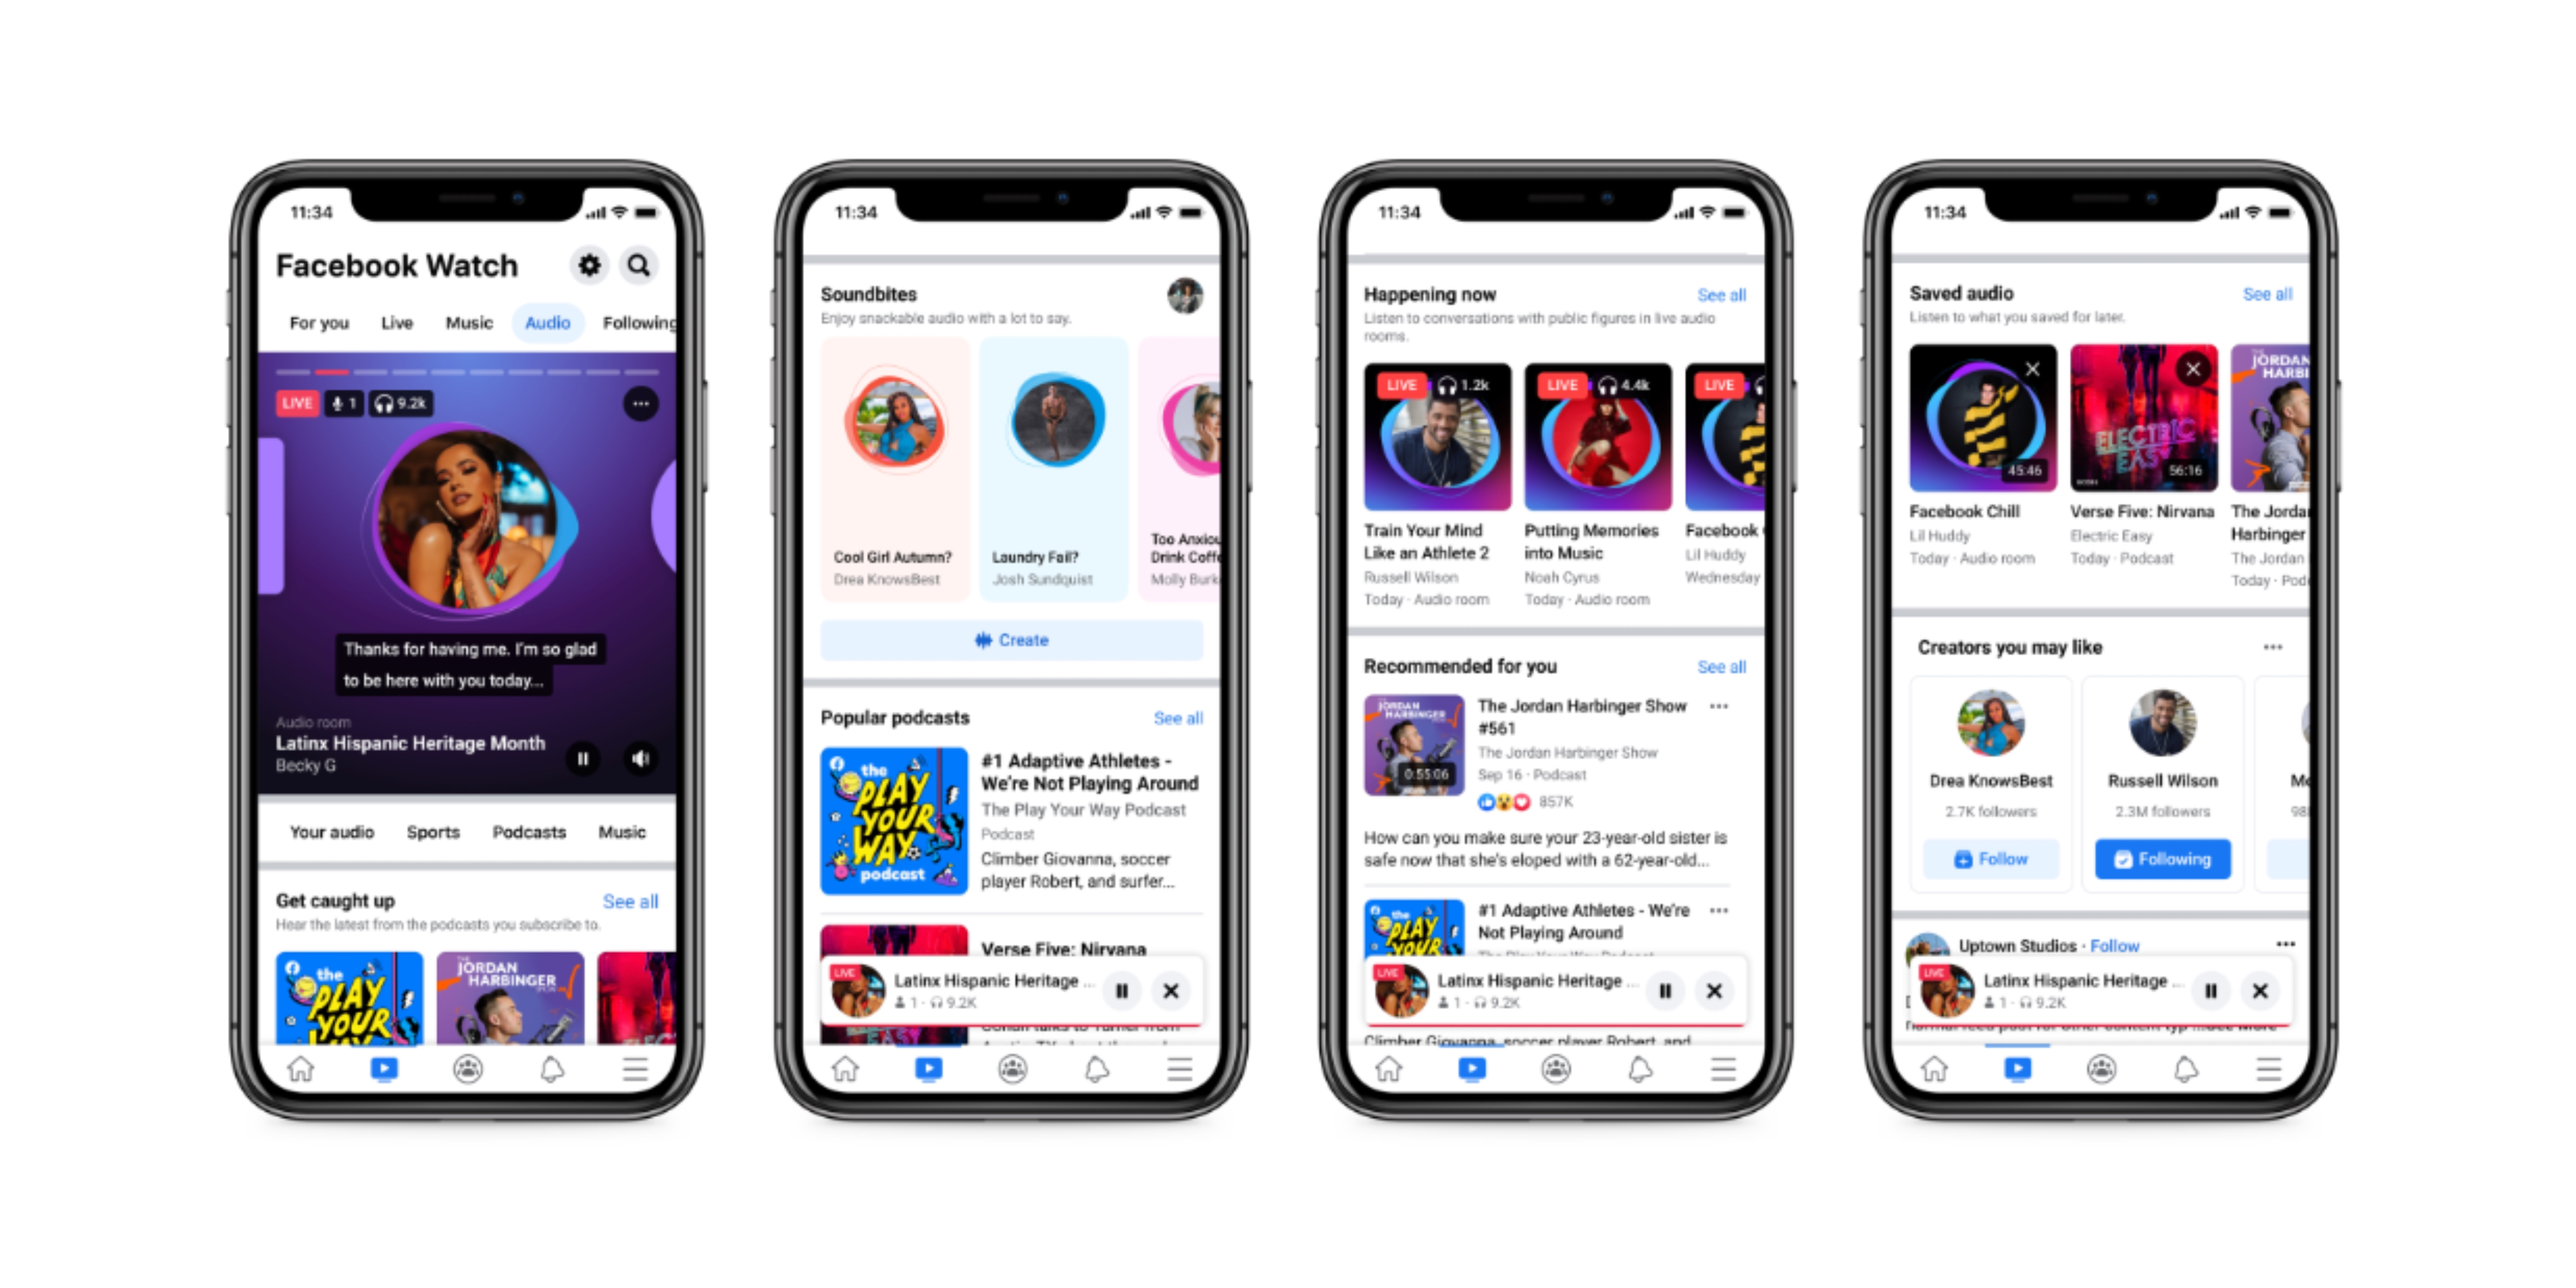 Facebook adds new 'Audio' tab with podcasts, live audio, more